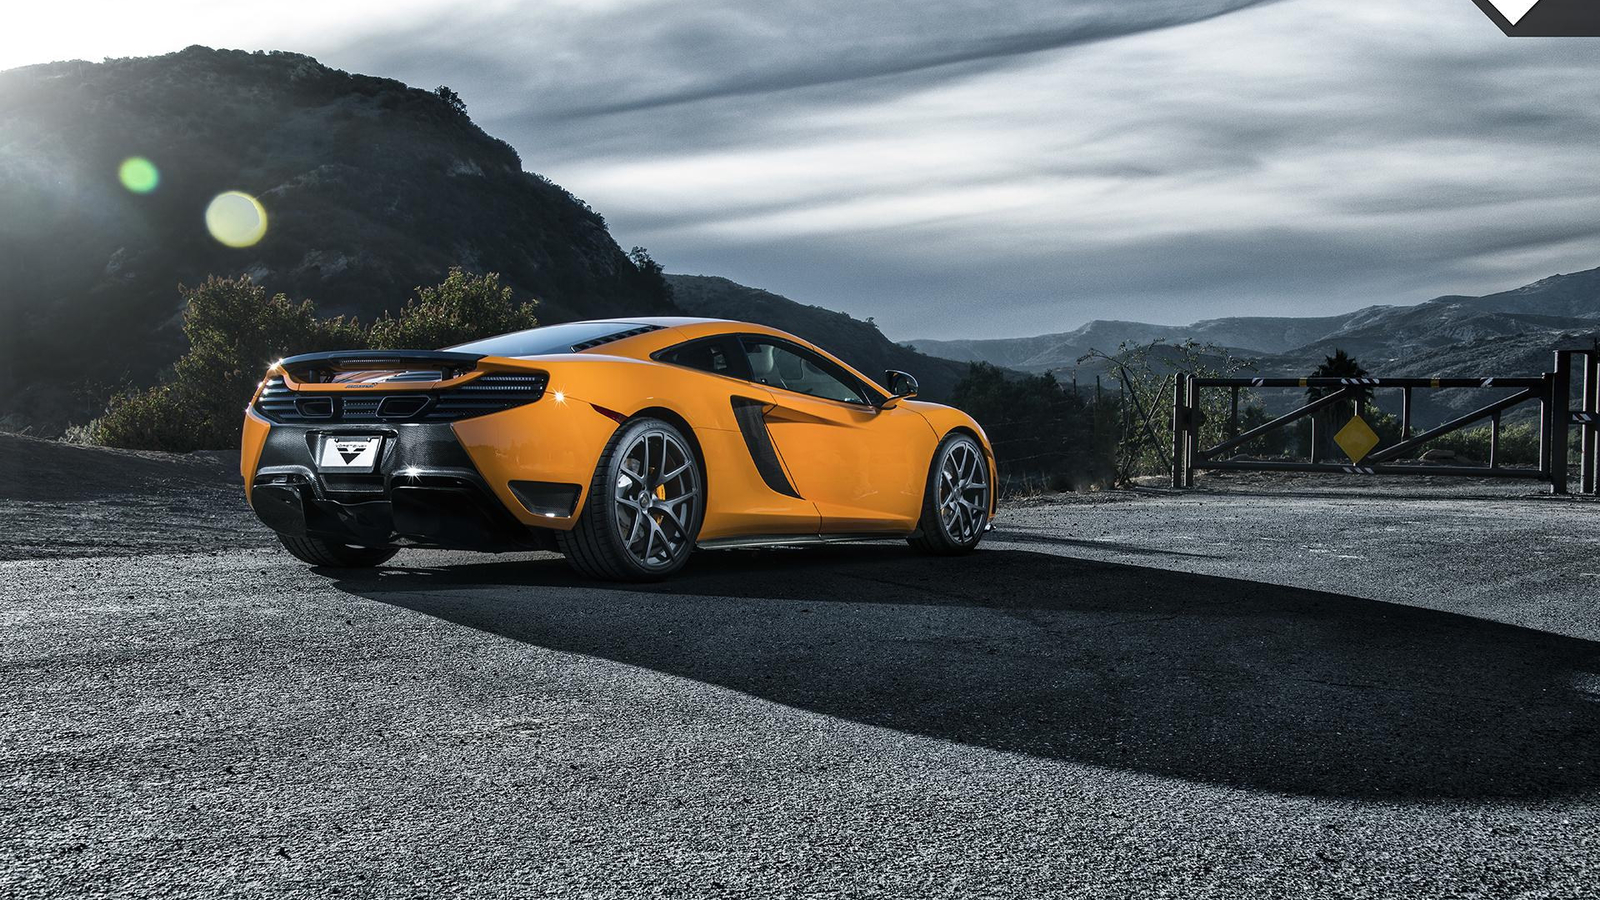 McLaren supercar wallpaper download 49766